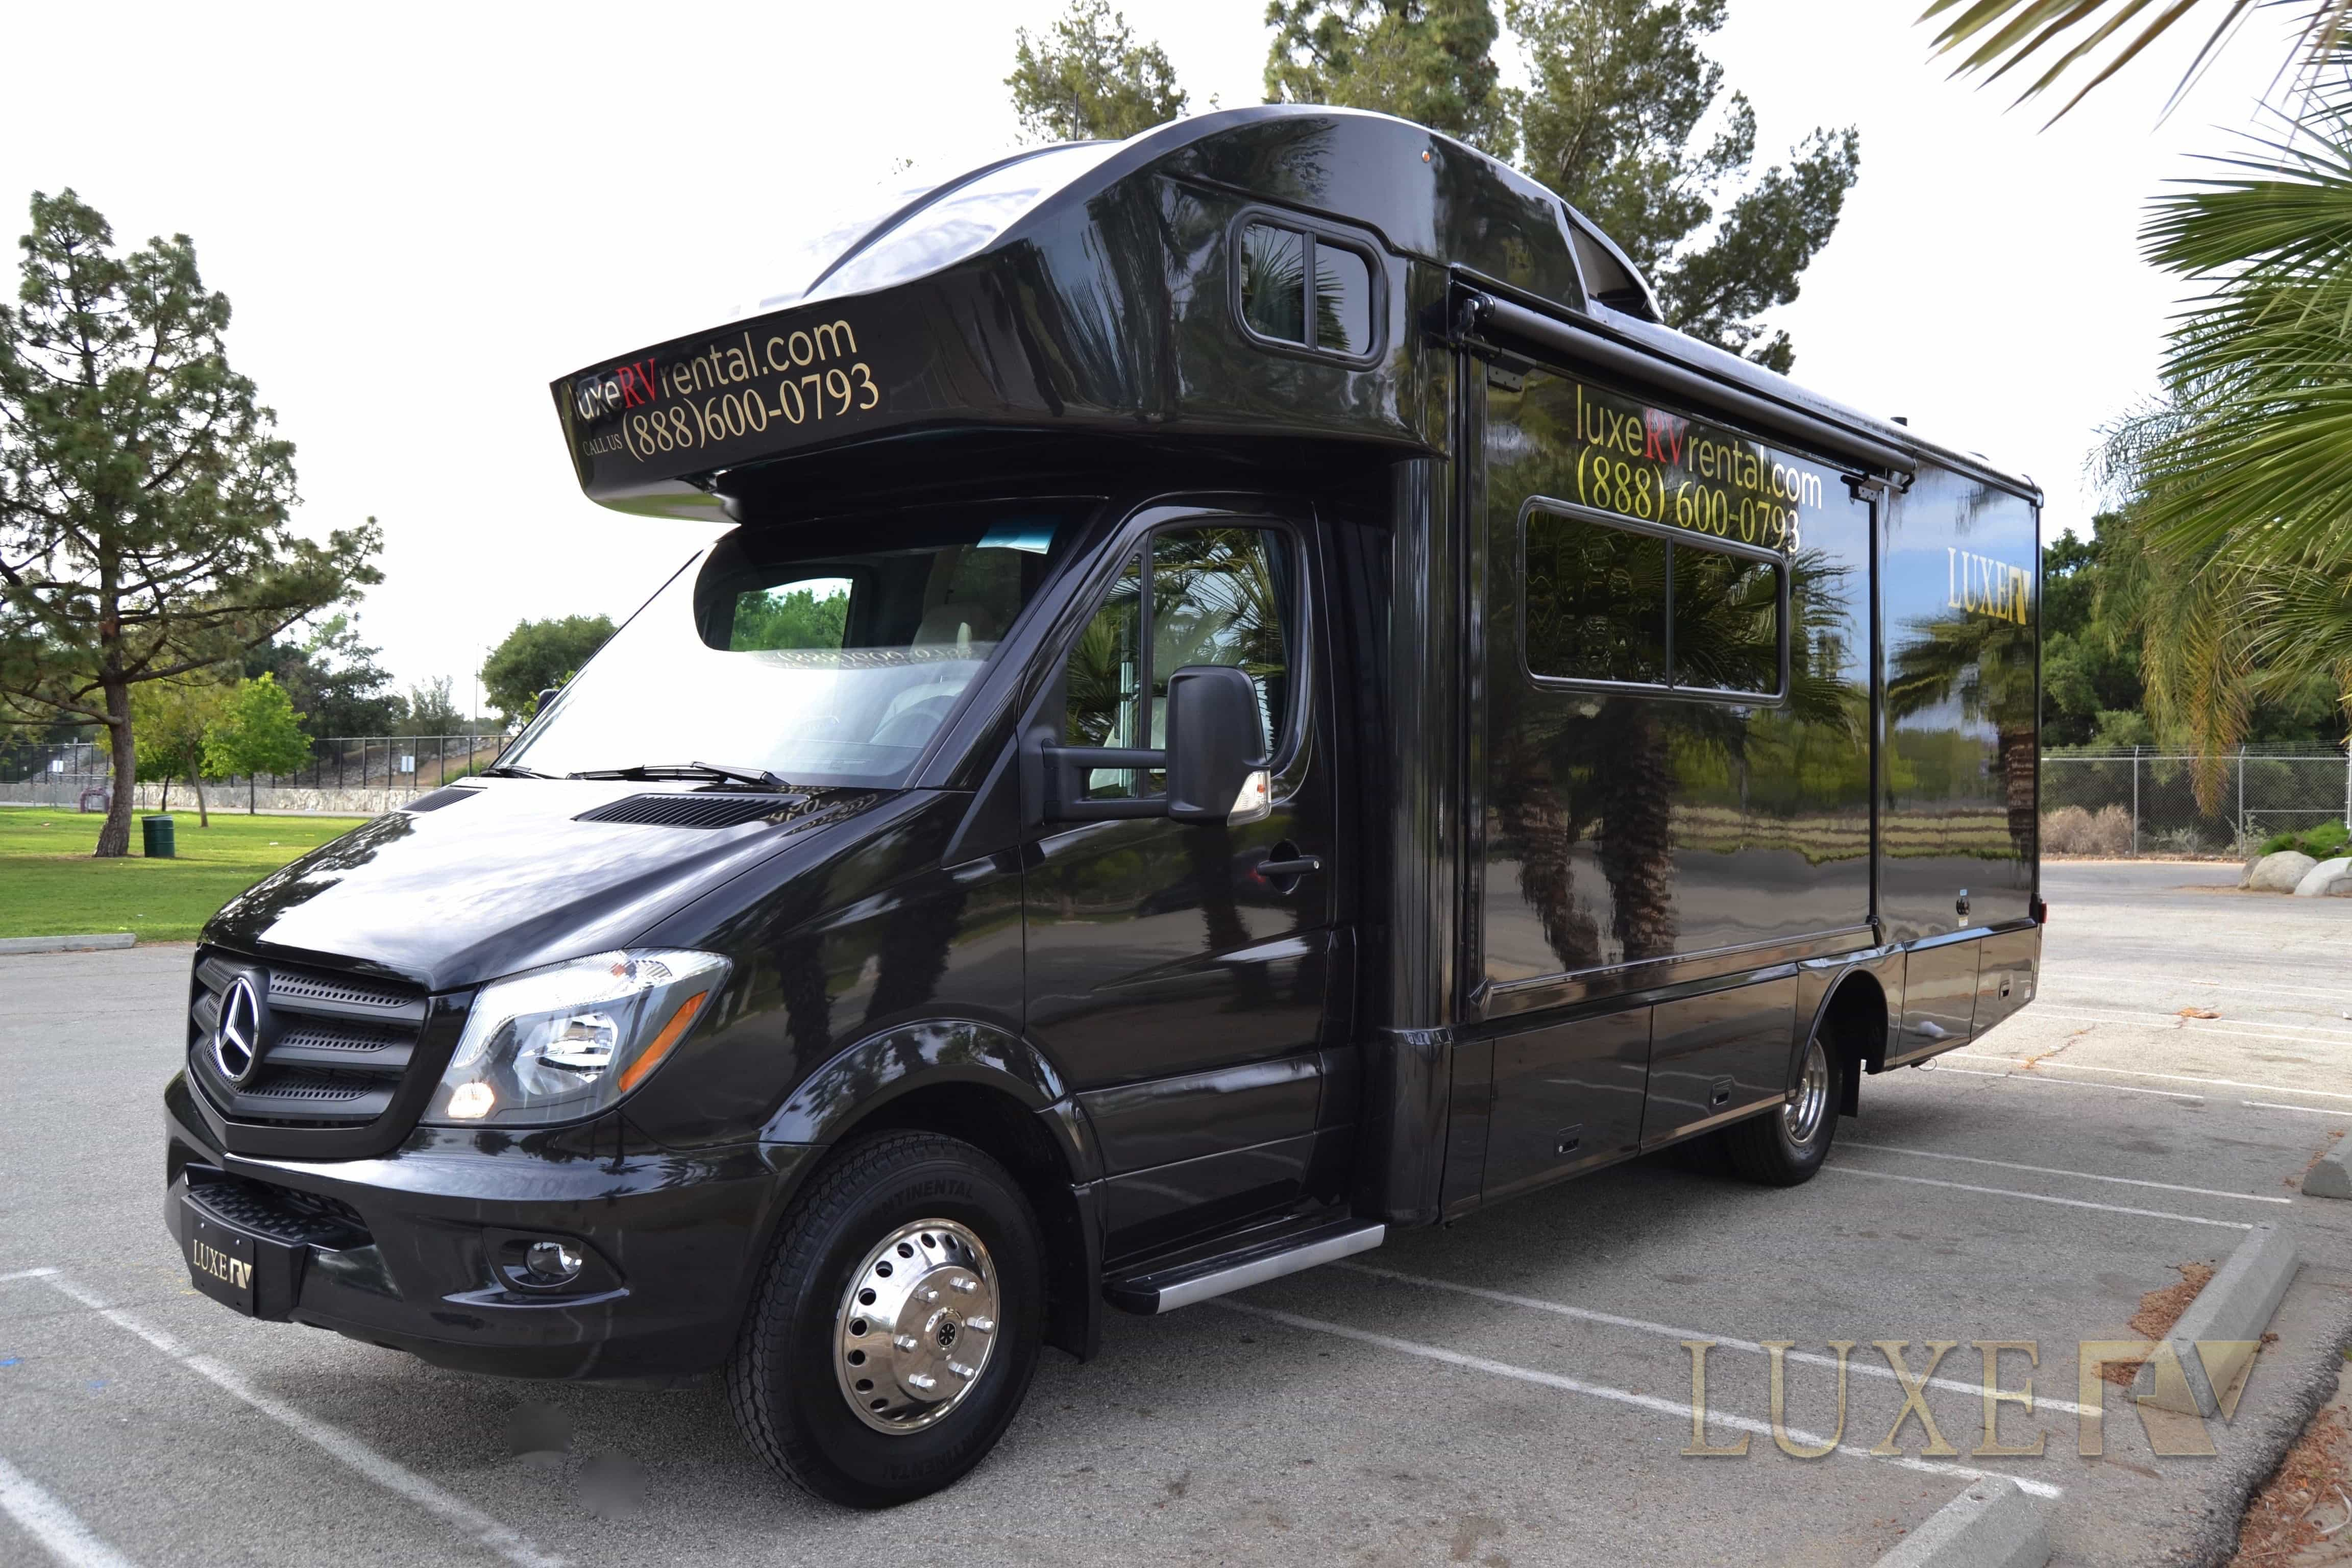 RV Mercedes for Rent Luxe RV 25-min